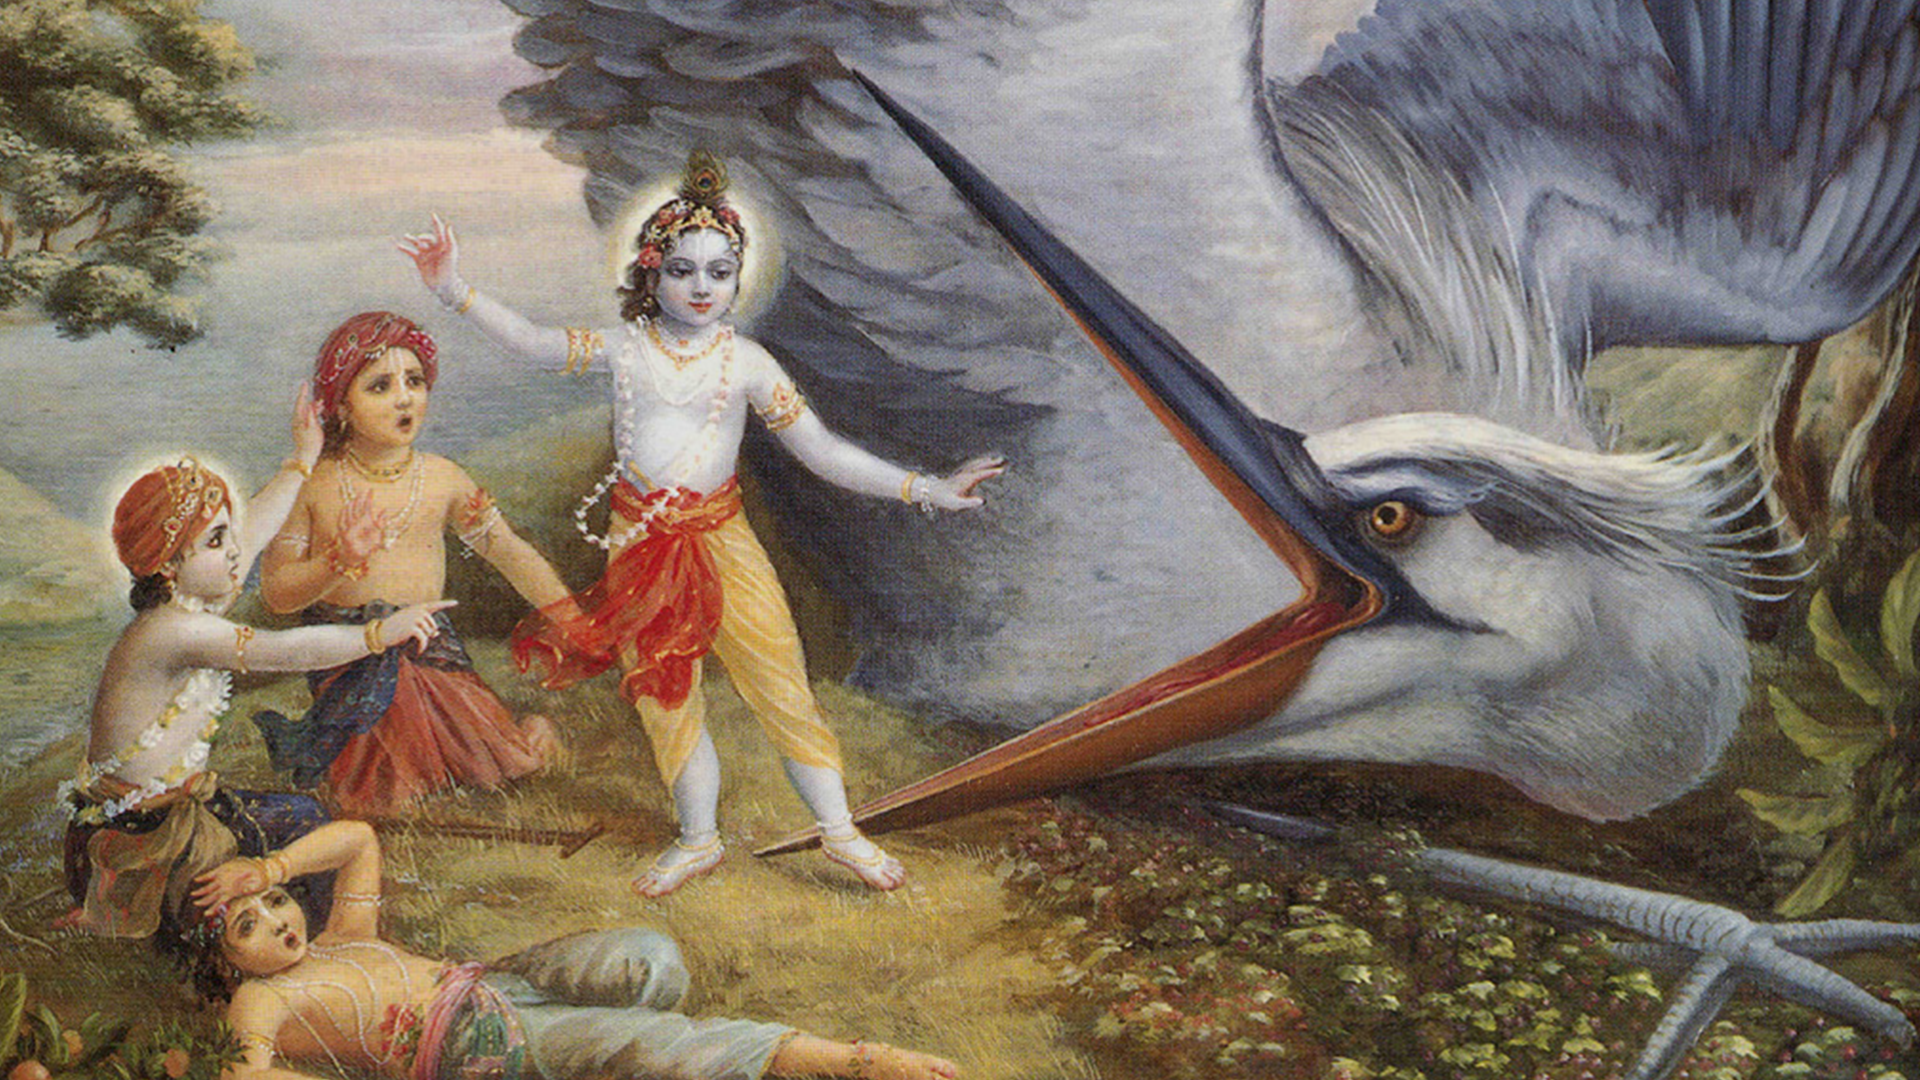 Vanquishing the Demons of Vrindavan